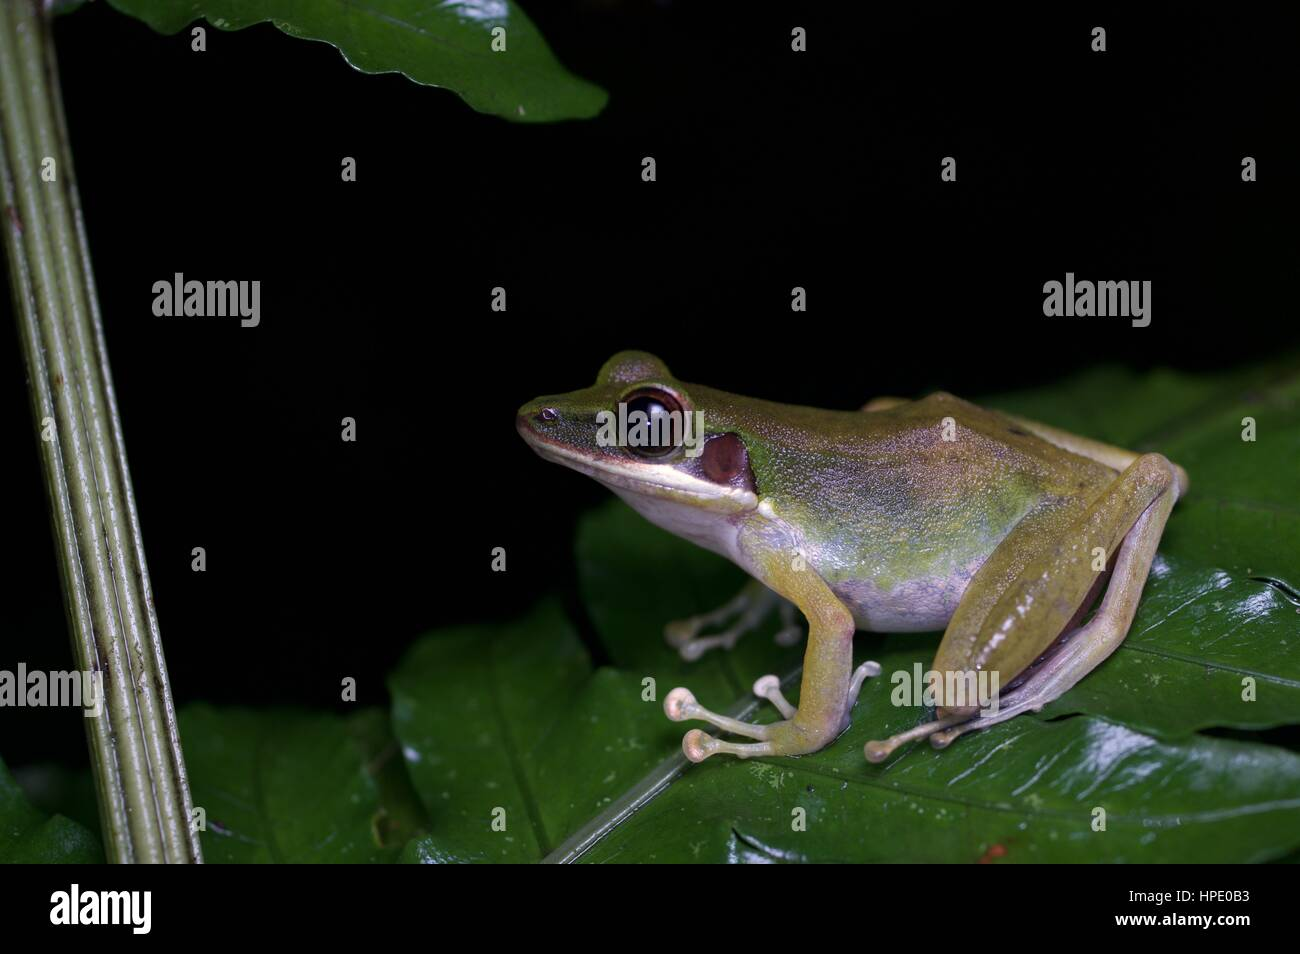 A White-lipped Frog (Chalcorana labialis) on a plant at night in the rainforest in Batang Kali, Selangor, Malaysia - Stock Image